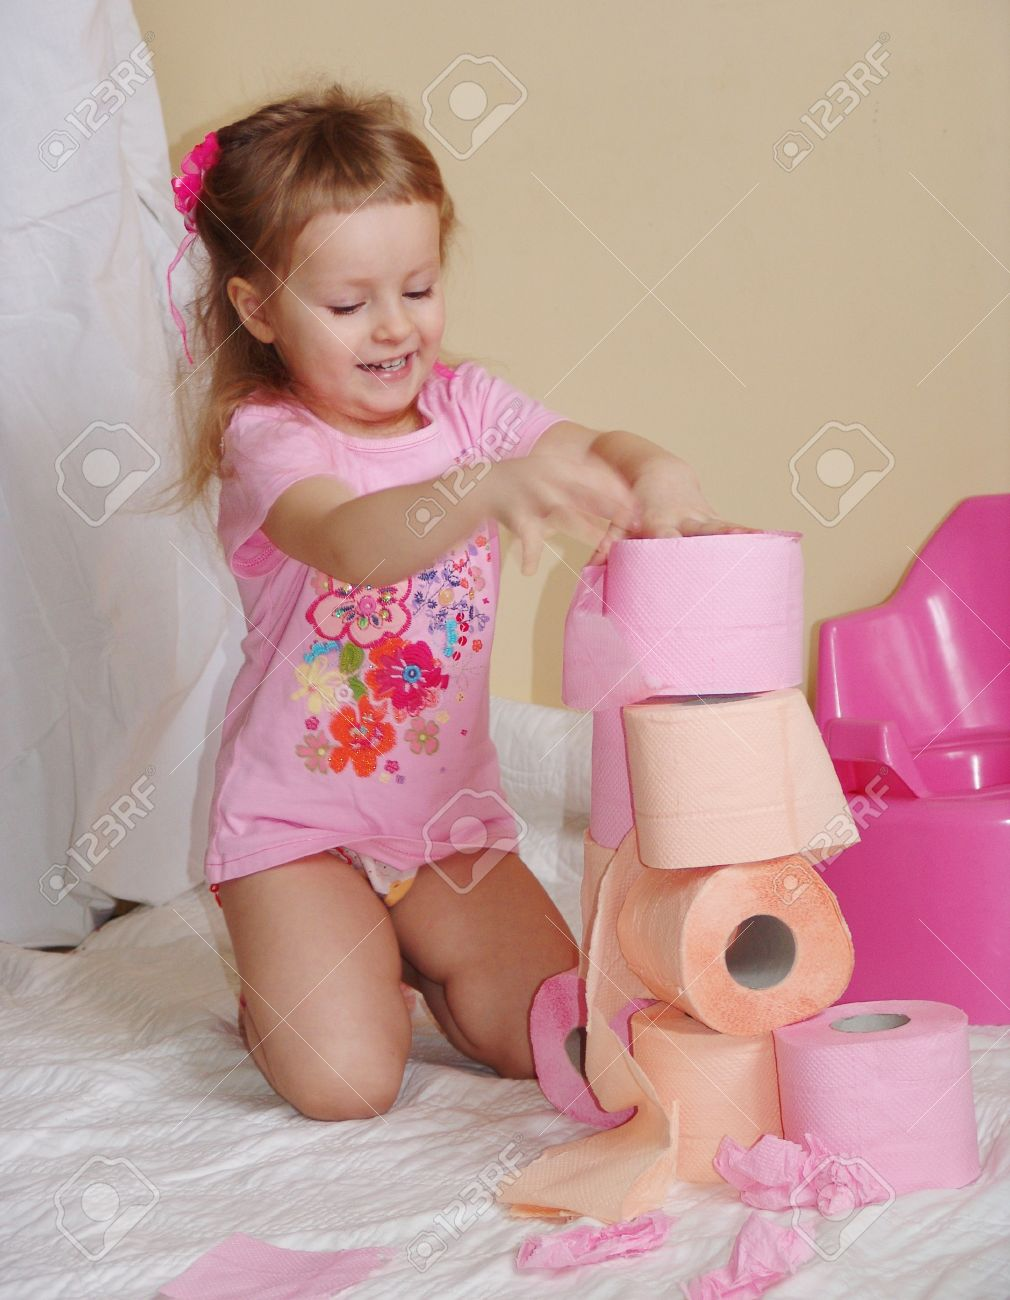 toddler girl pee The kid sits on a pot with a toilet paper Stock Photo - 9045072